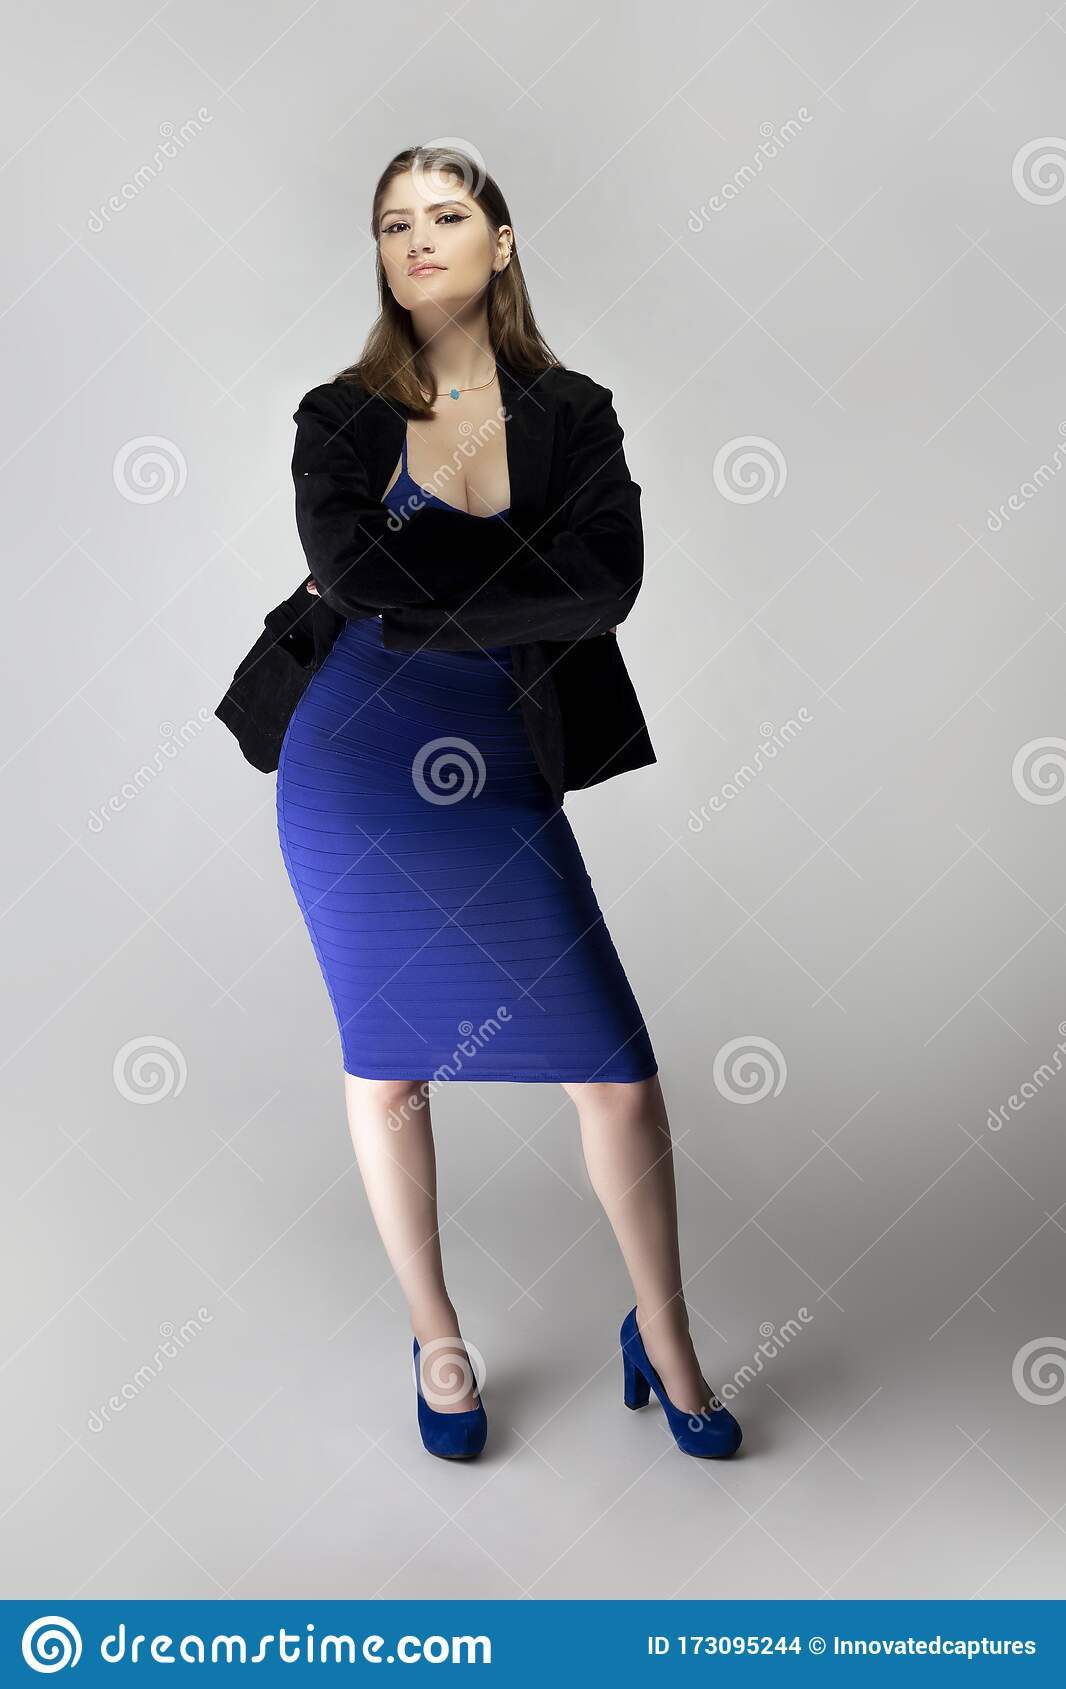 poses with dress outfit